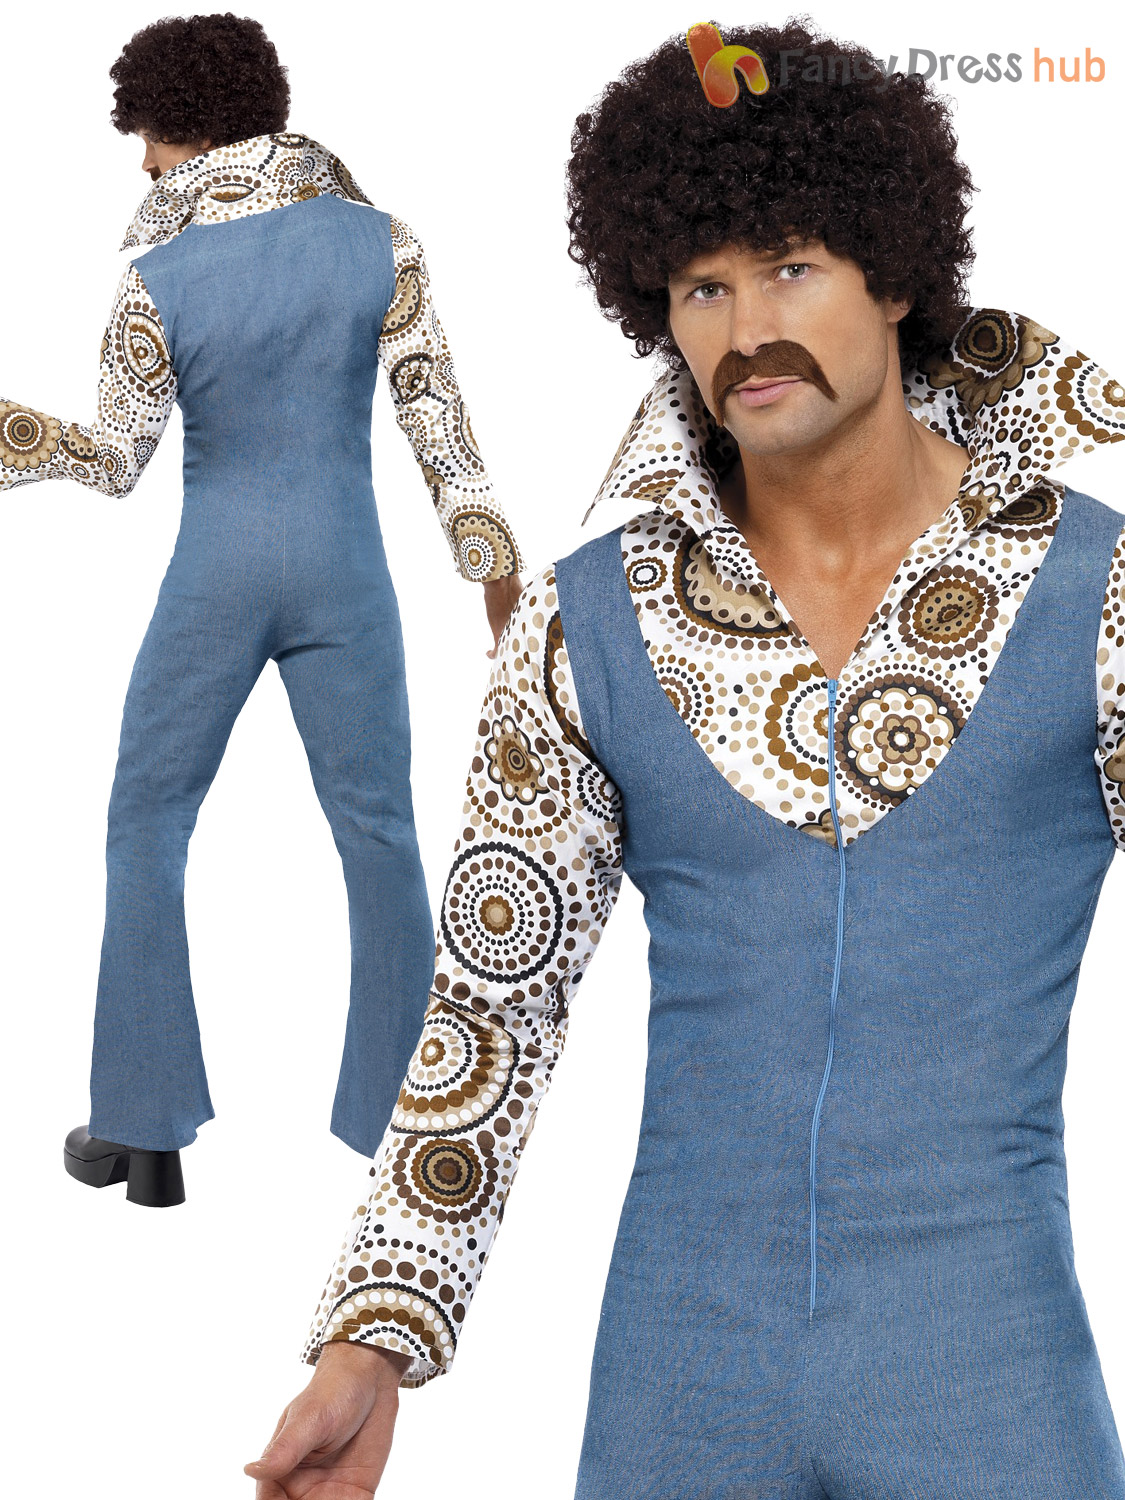 Outfit Disco Mens Groovy Hippy Hippie Disco Costume Adult 60s 70s 1970s